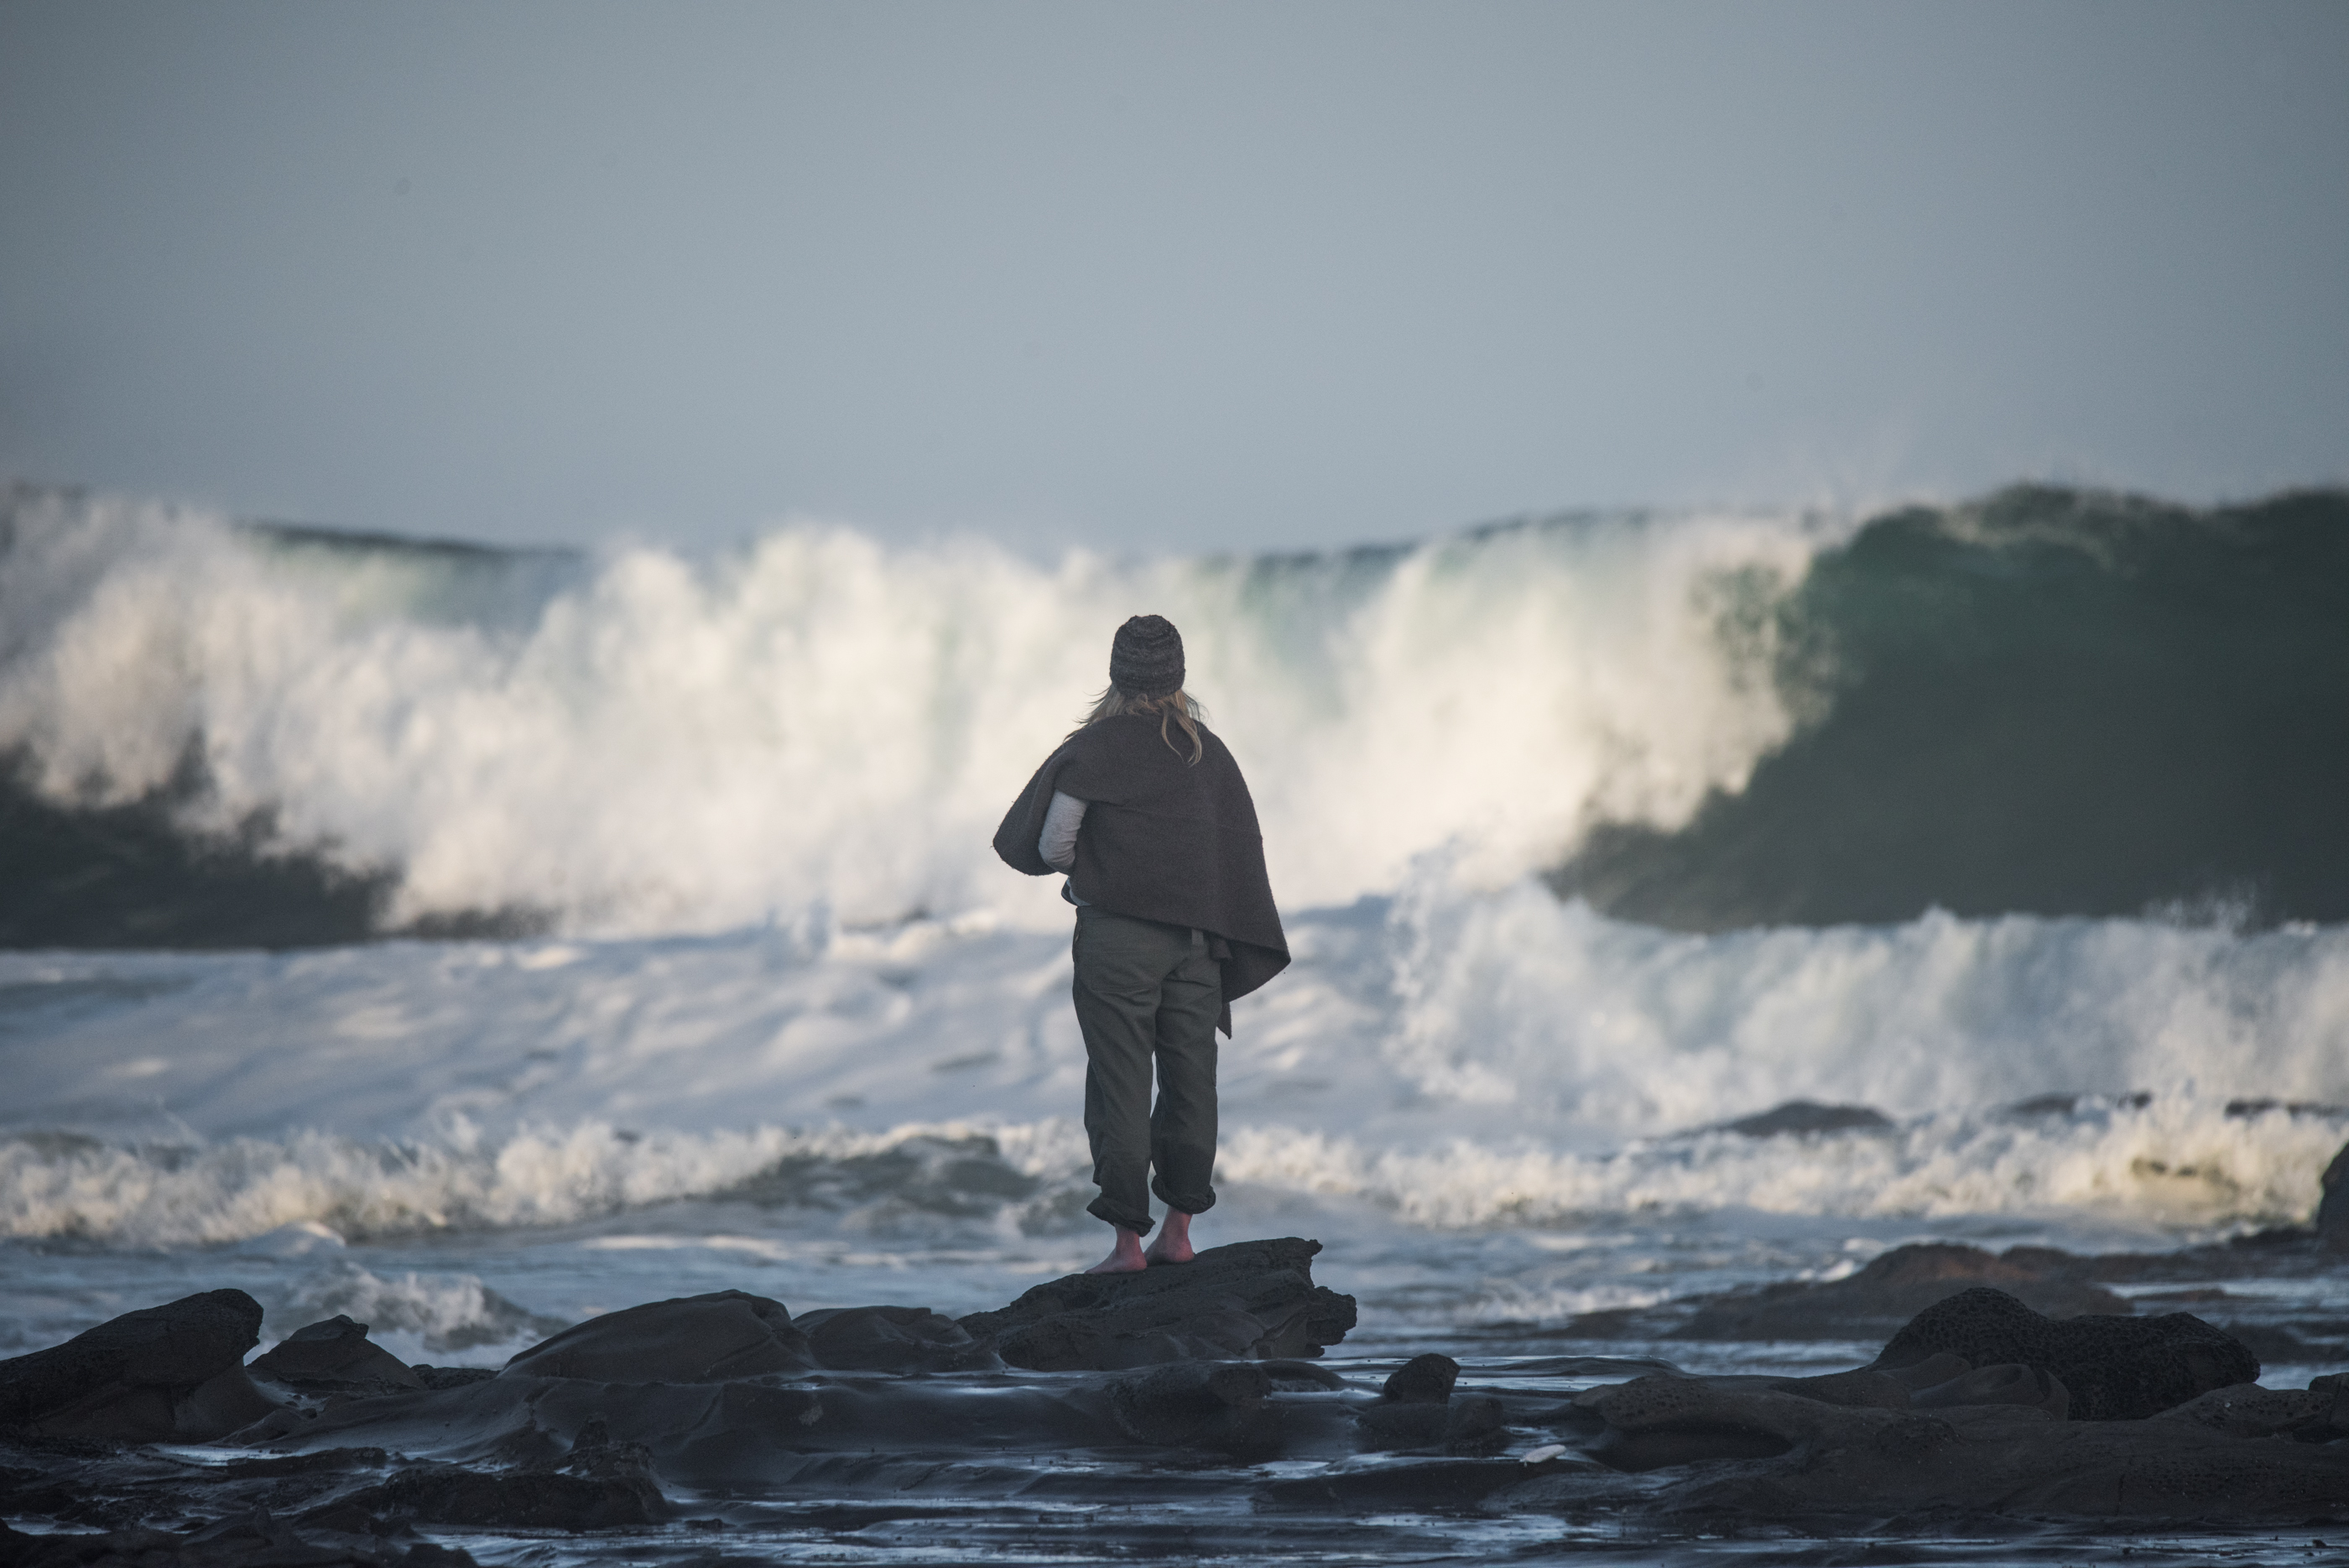 Surf photographer and big waves